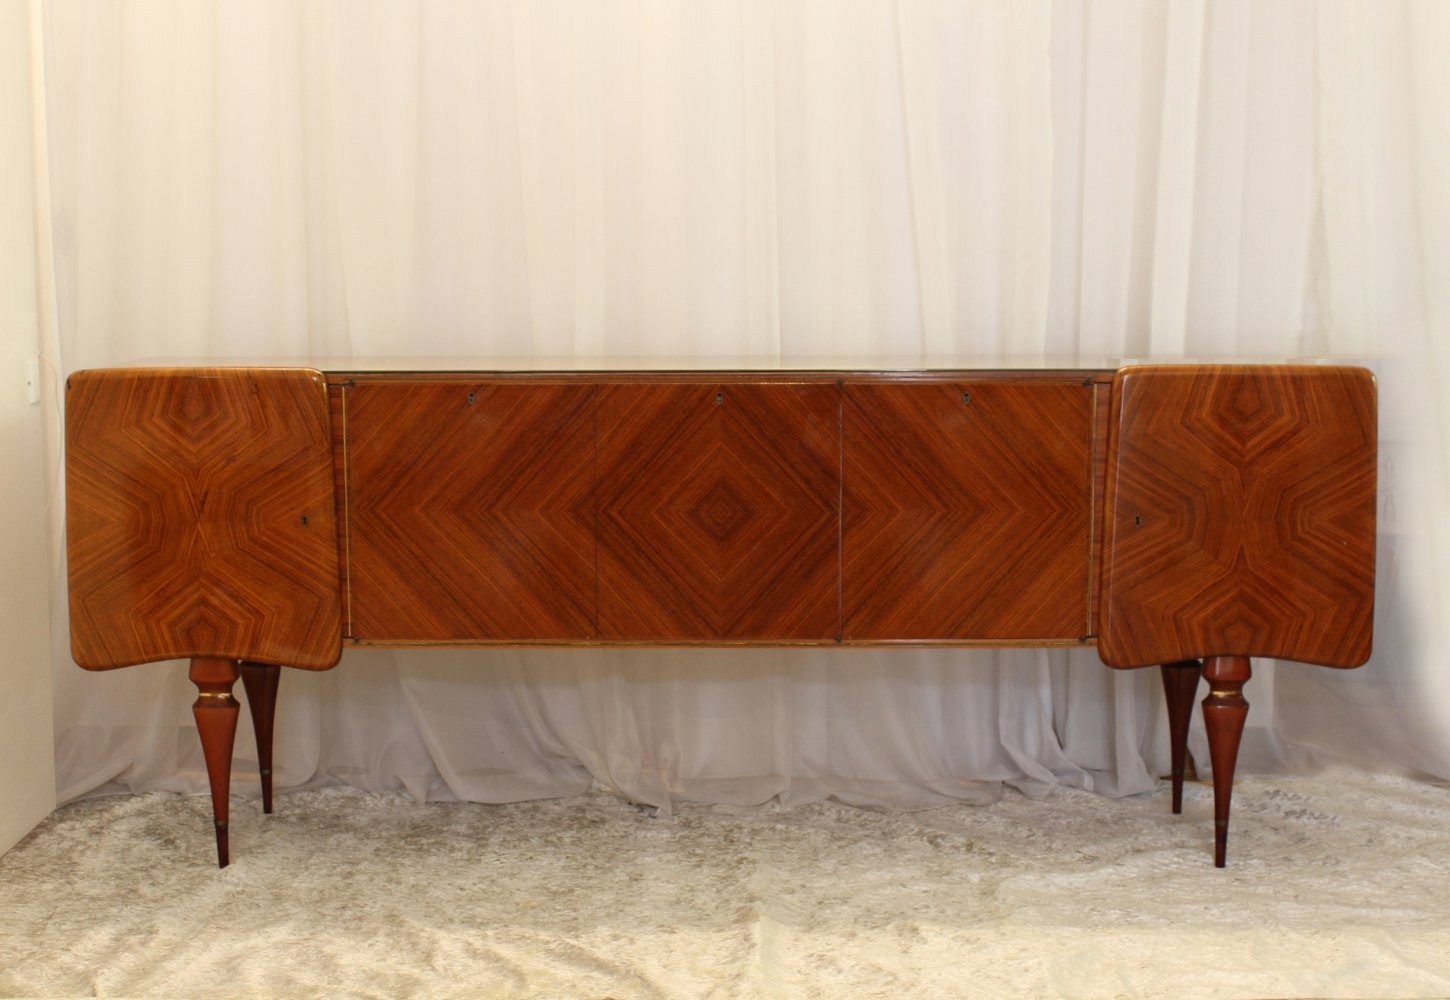 1950s vintage Sideboard with geometric figures